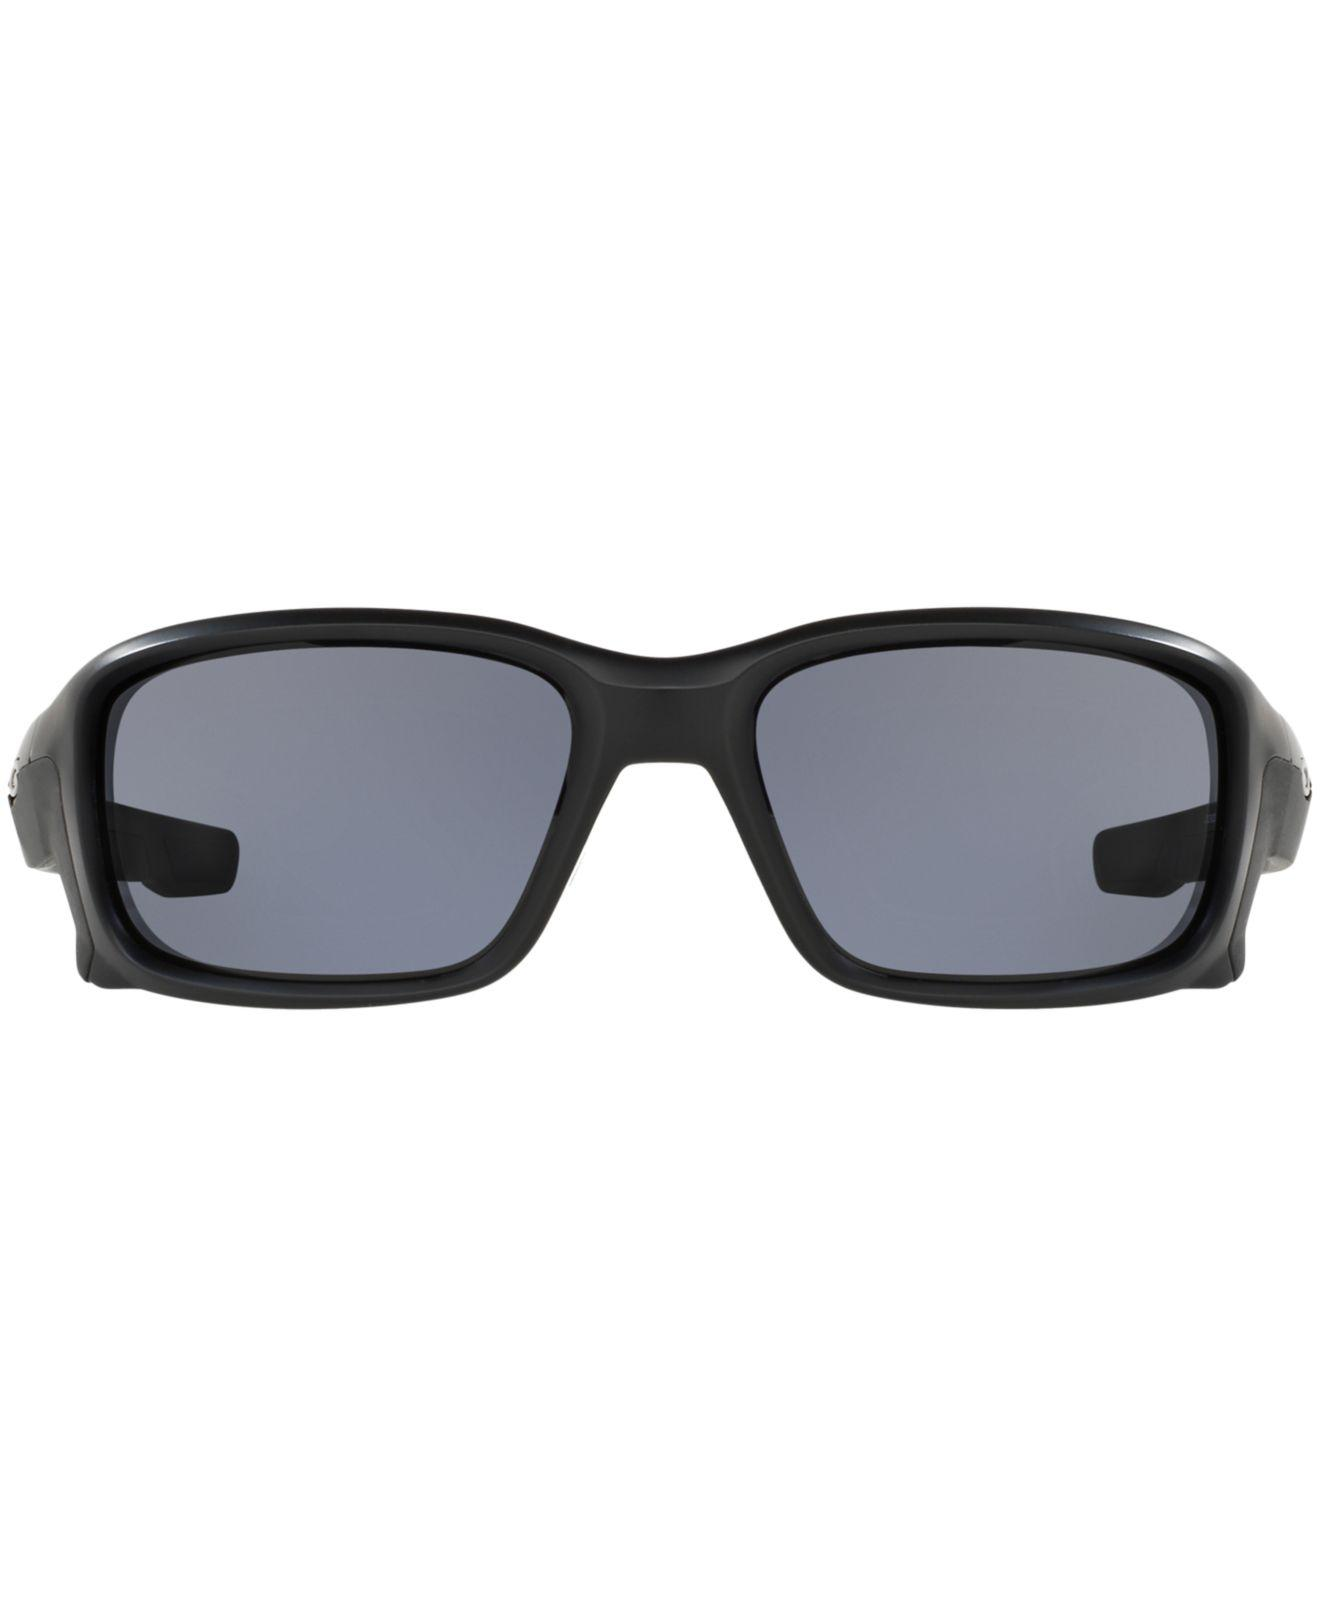 d97c783374 Lyst - Oakley Straightlink Sunglasses